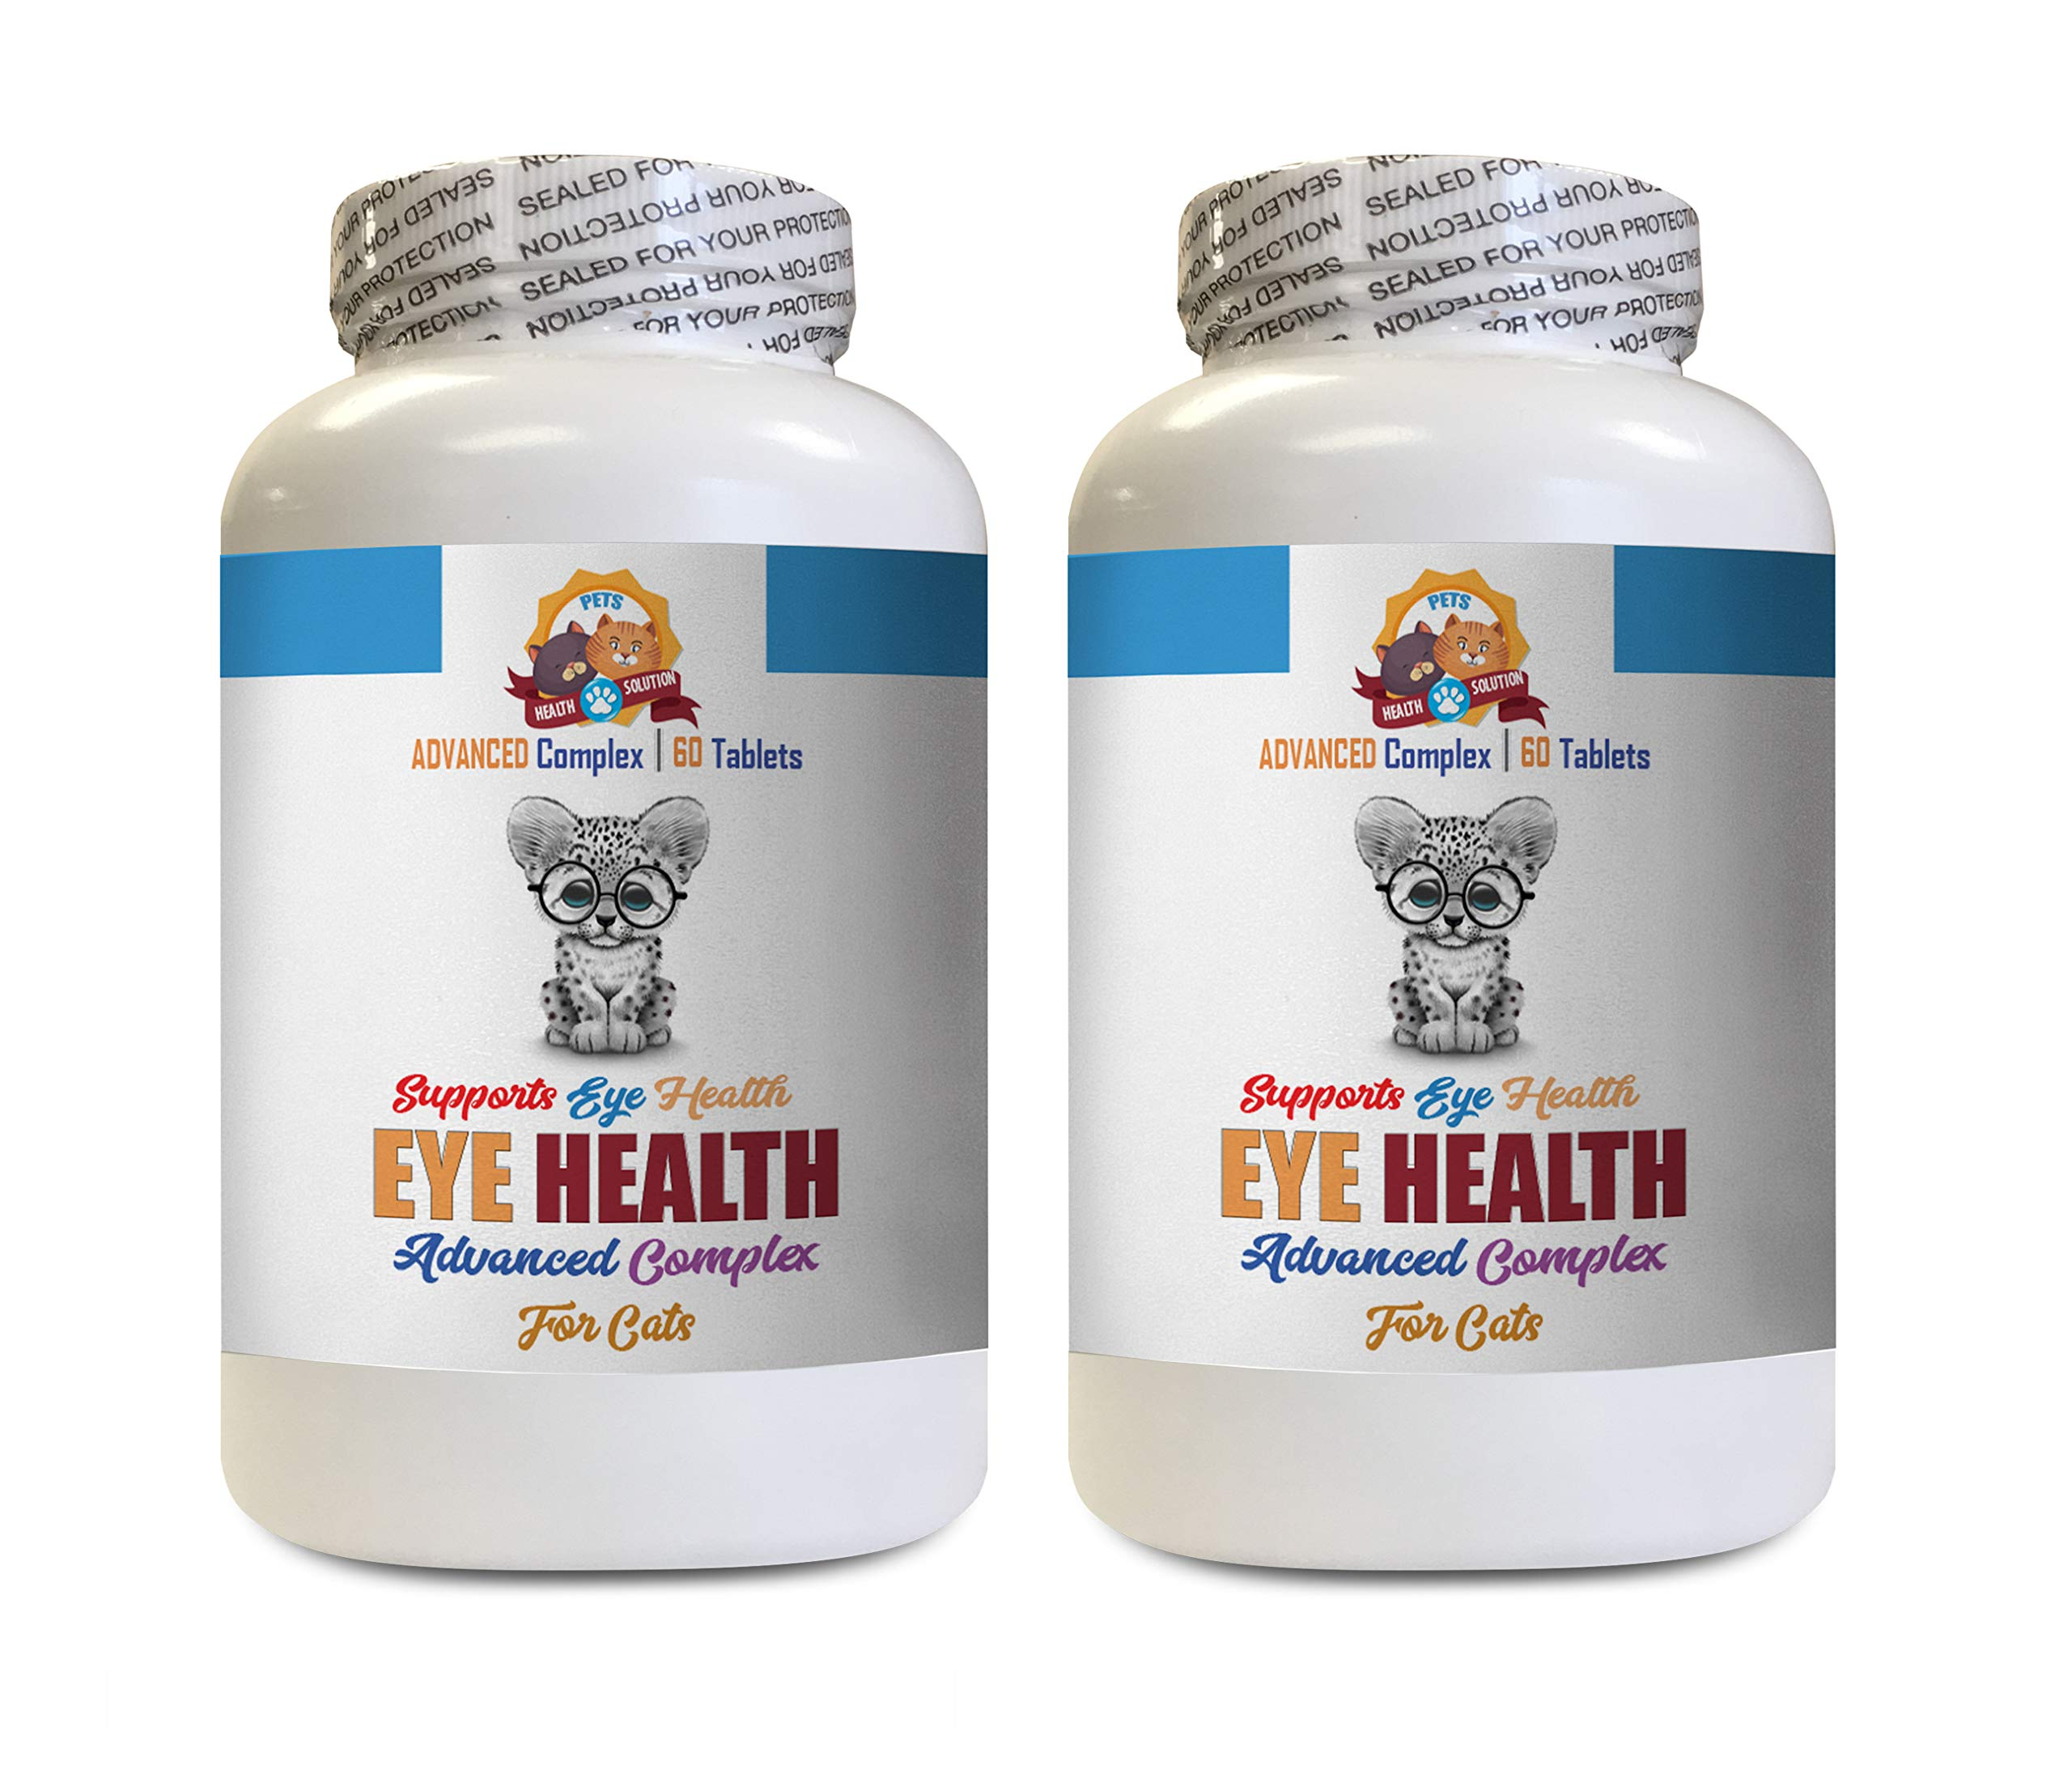 cat Treats for Eyes - Eye Health Solution for Cats - Best Vision - Helps Dry Itchy Eyes - Advanced Formula - astaxanthin for Cats - 120 Tablets (2 Bottles) by PETS HEALTH SOLUTION